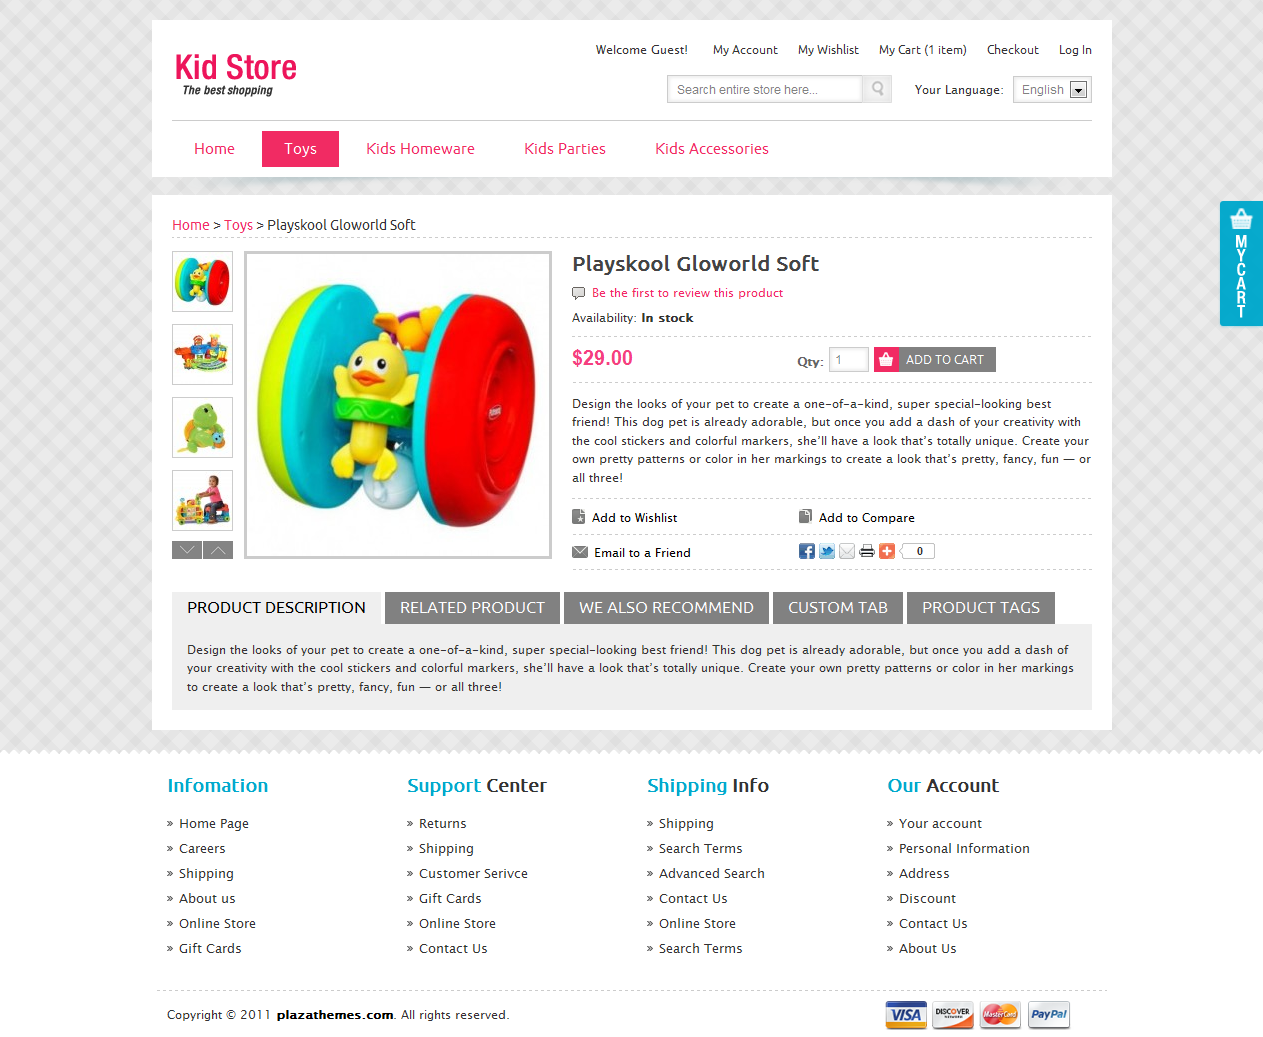 Kid-Store-eCommerce-Magento-Online-Store-Templates